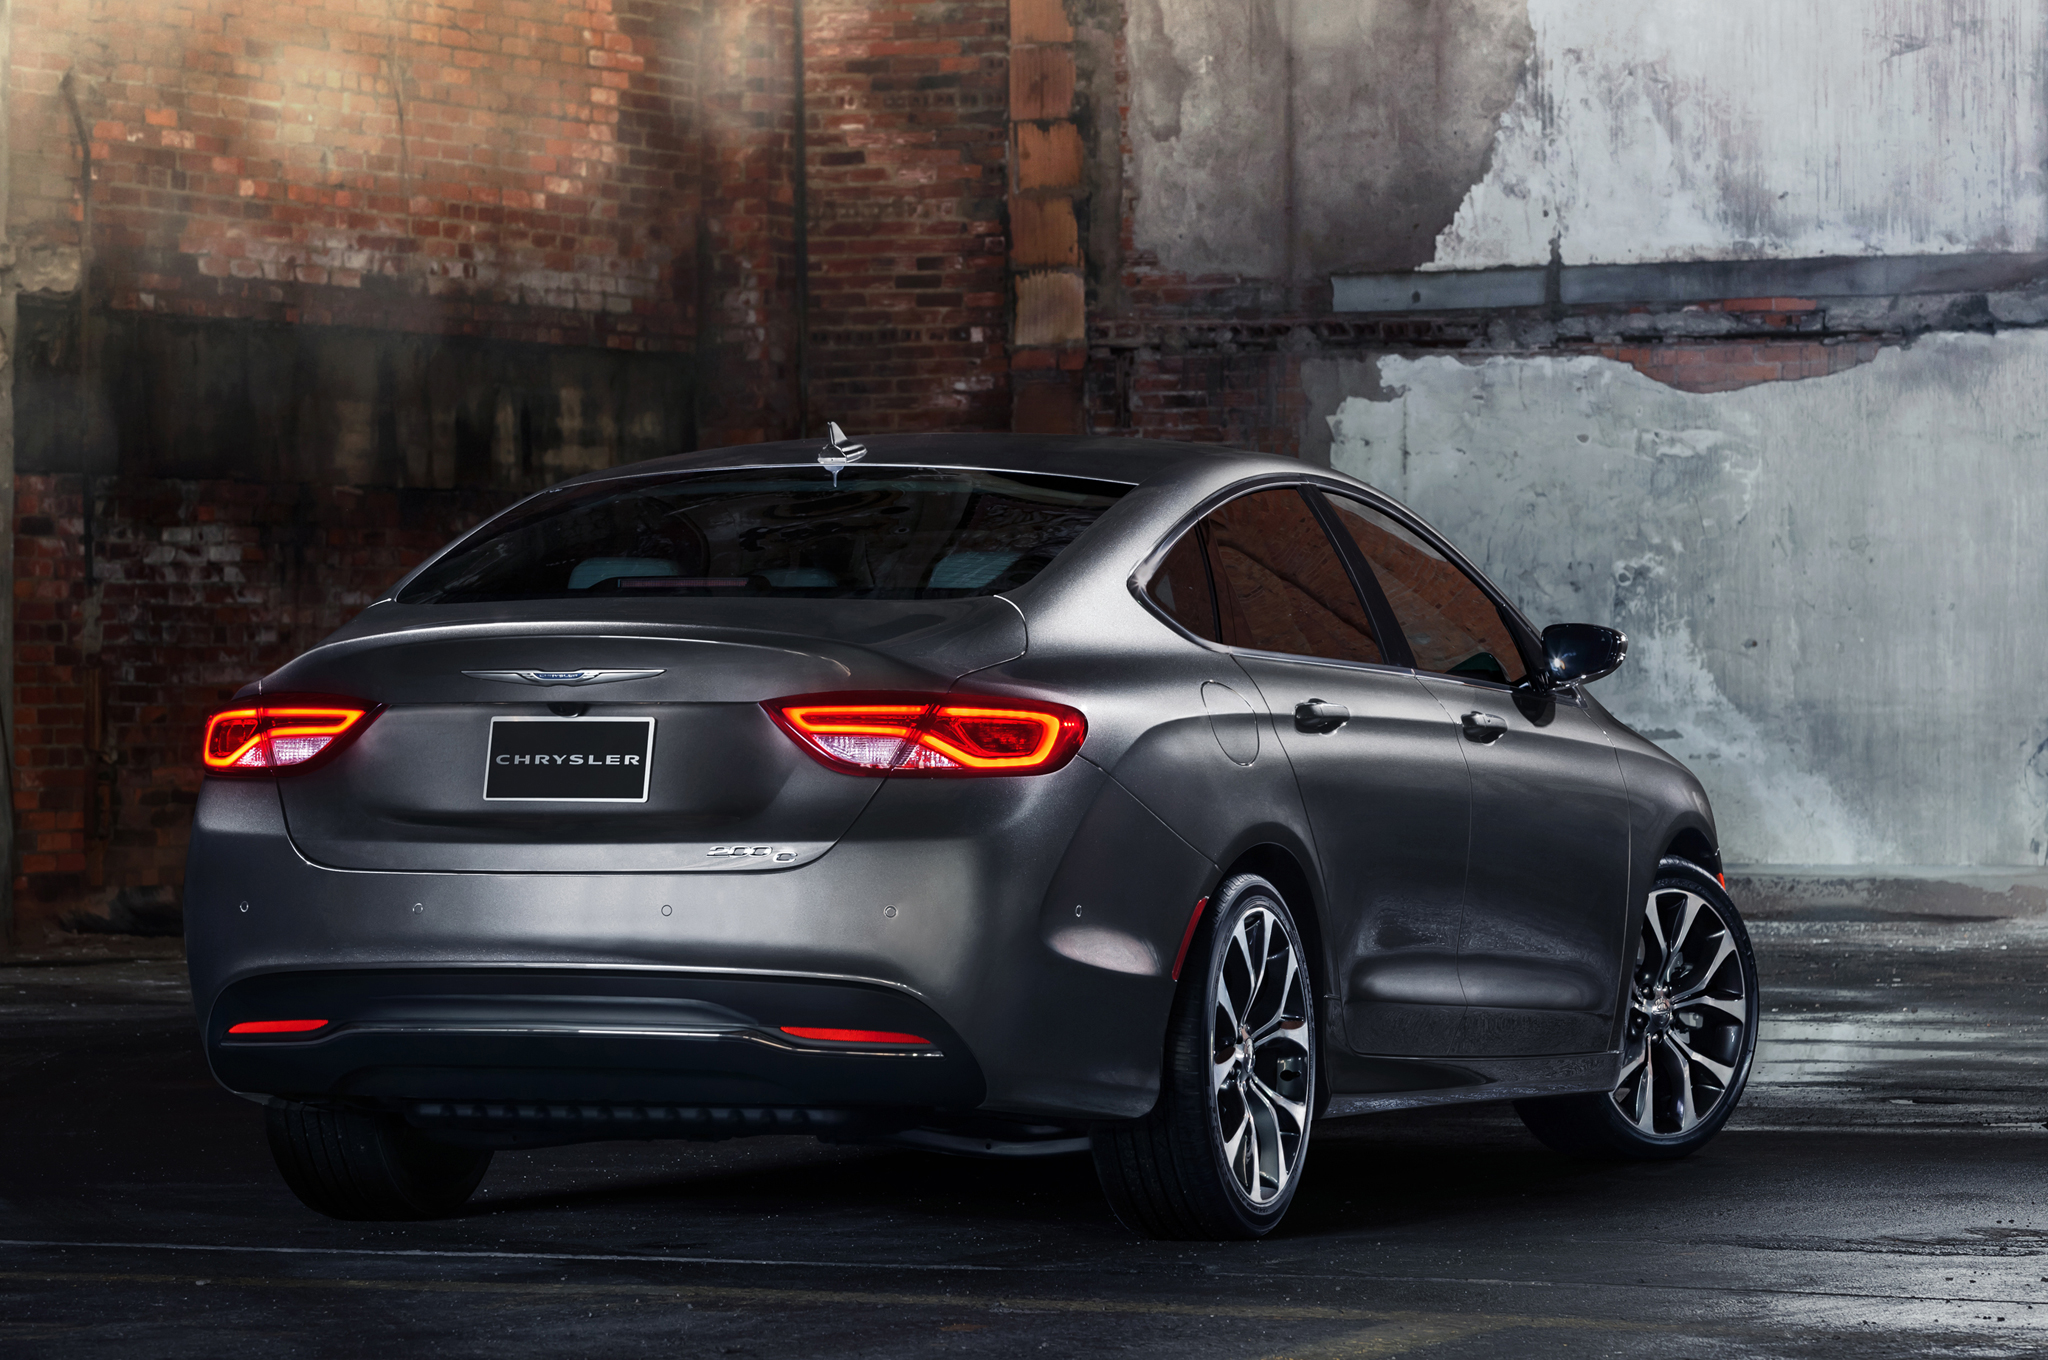 2015 Chrysler 200 Rear Exterior (Photo 8 of 11)